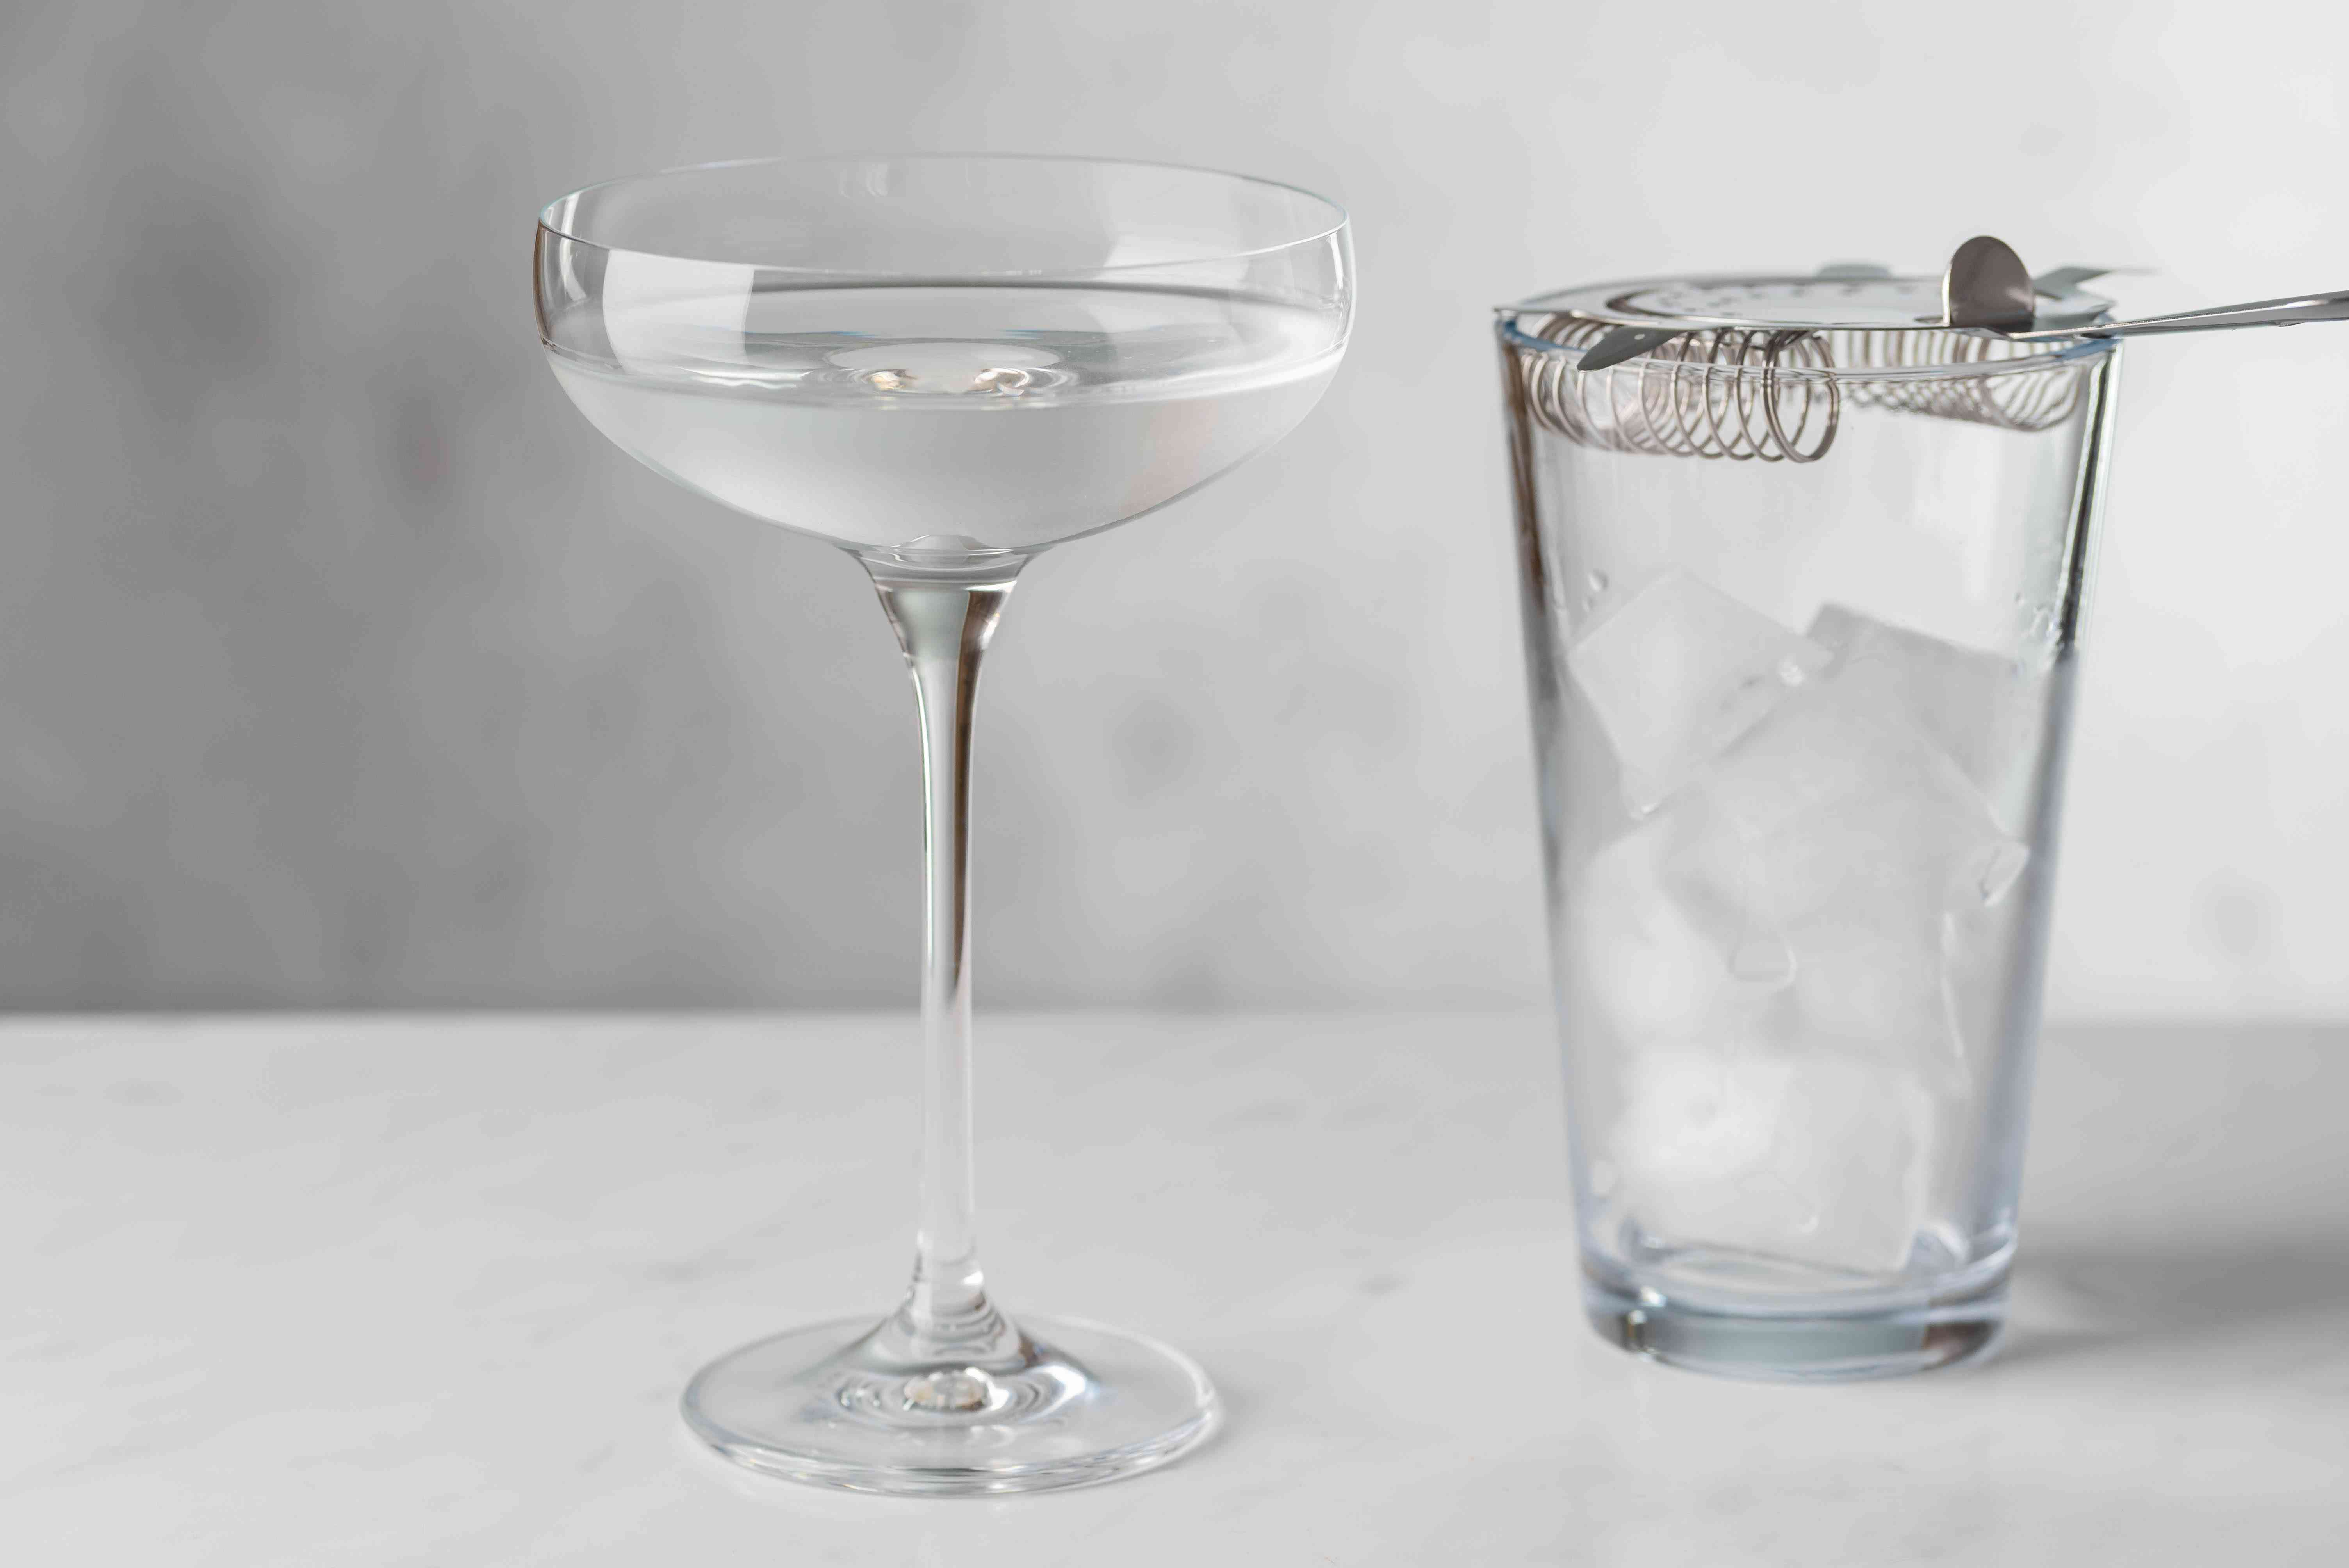 Strain into a chilled cocktail glass